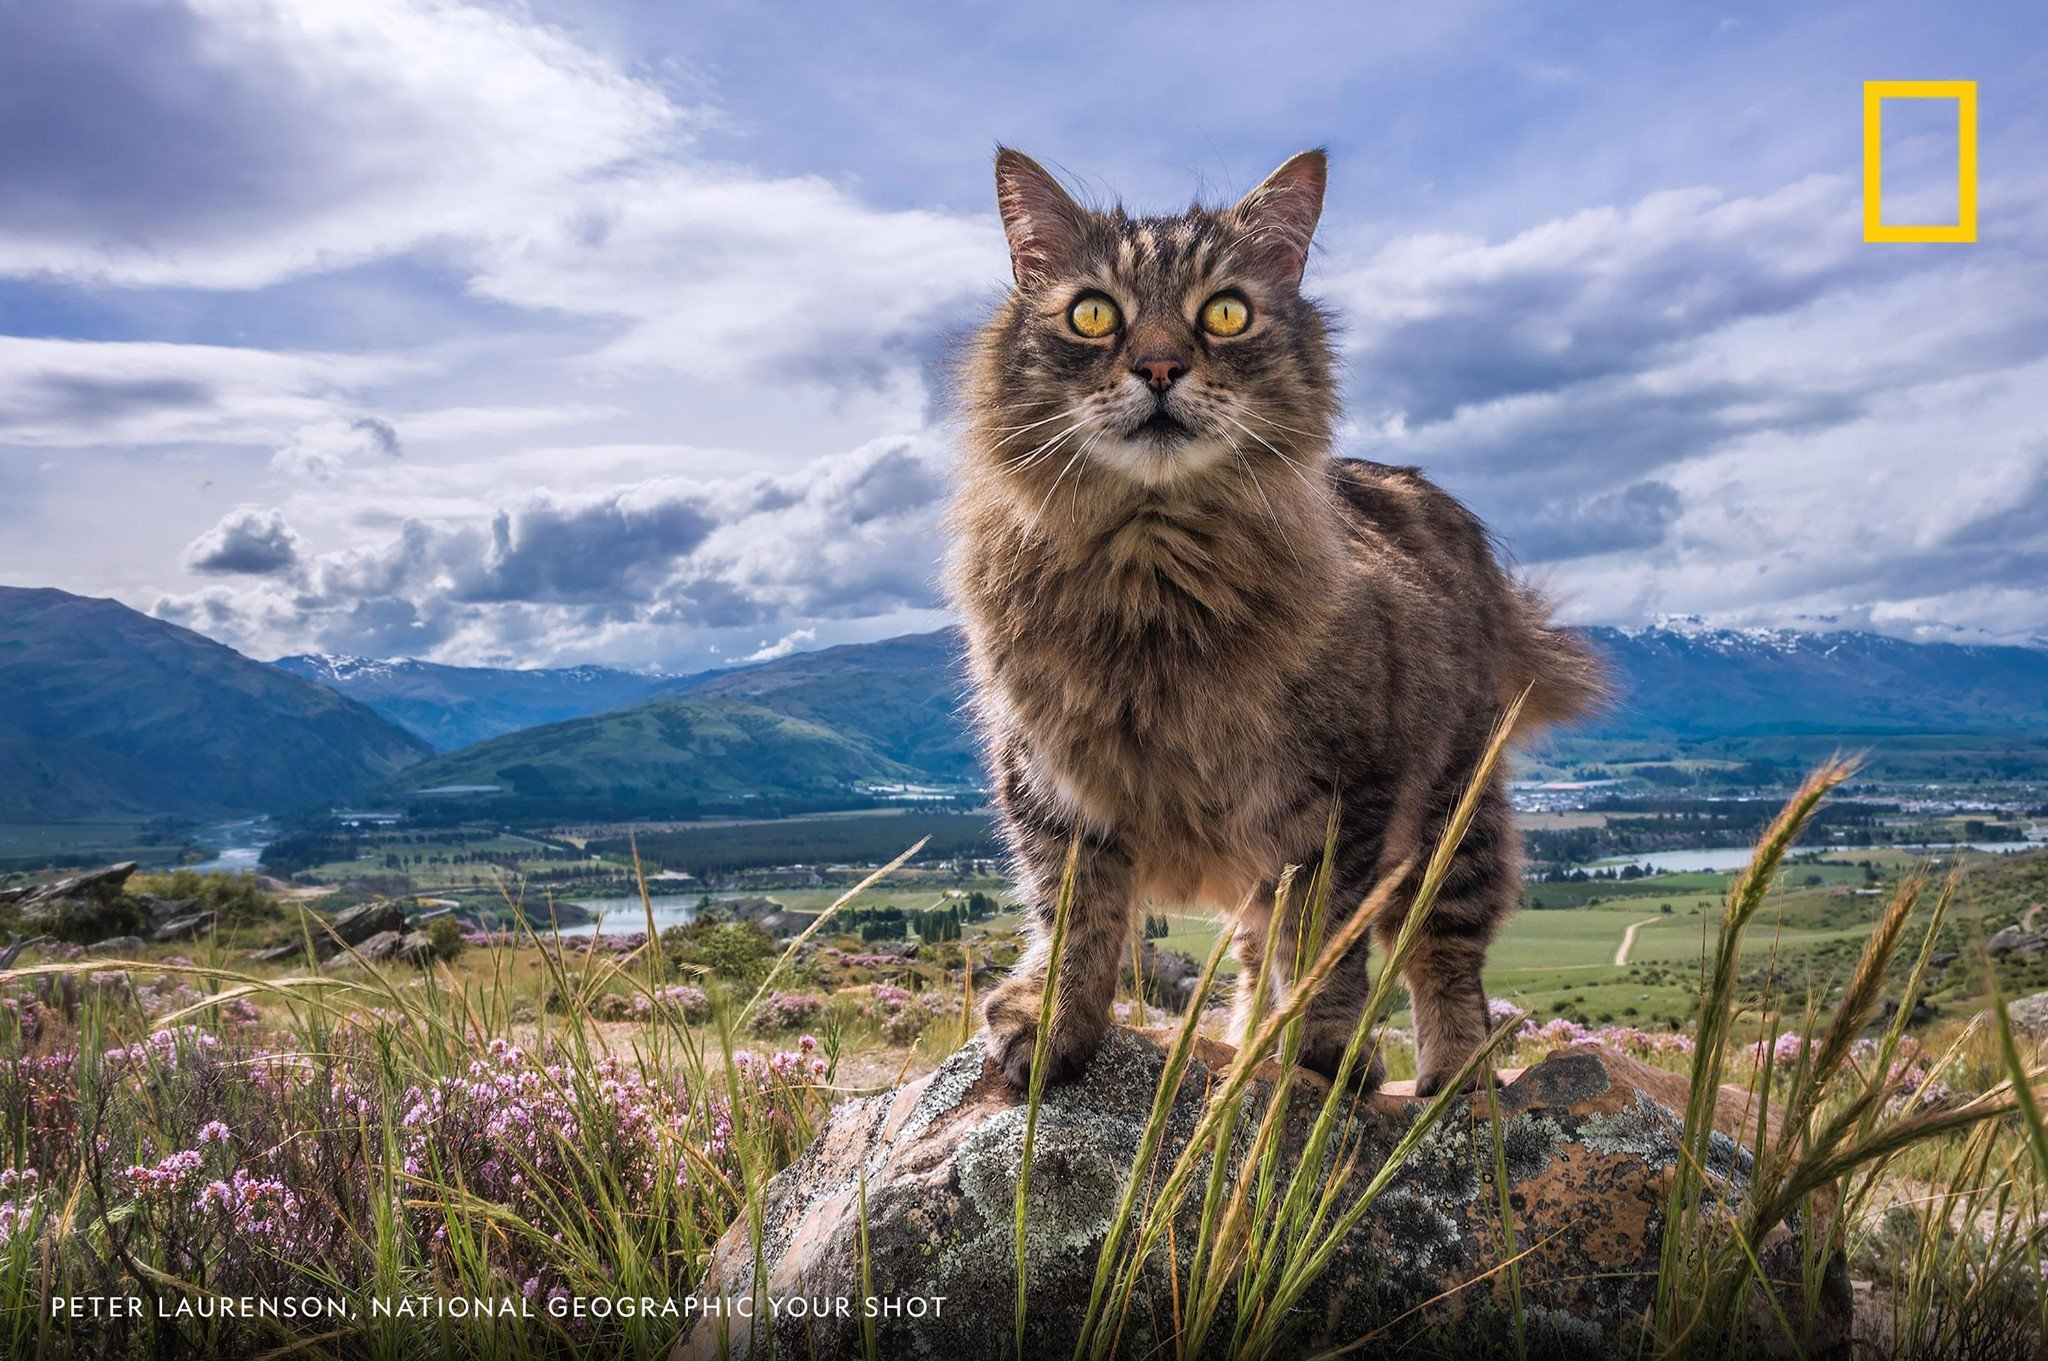 "Happy International Cat Day! ""Scruff keeps an eye on things from his high country perch [in] Bannockburn, Central Otago, New Zealand,"" writes Your Shot photographer Peter Laurenson. What's your fearless feline's favorite perch? https://on.natgeo.com/2YRdggO"